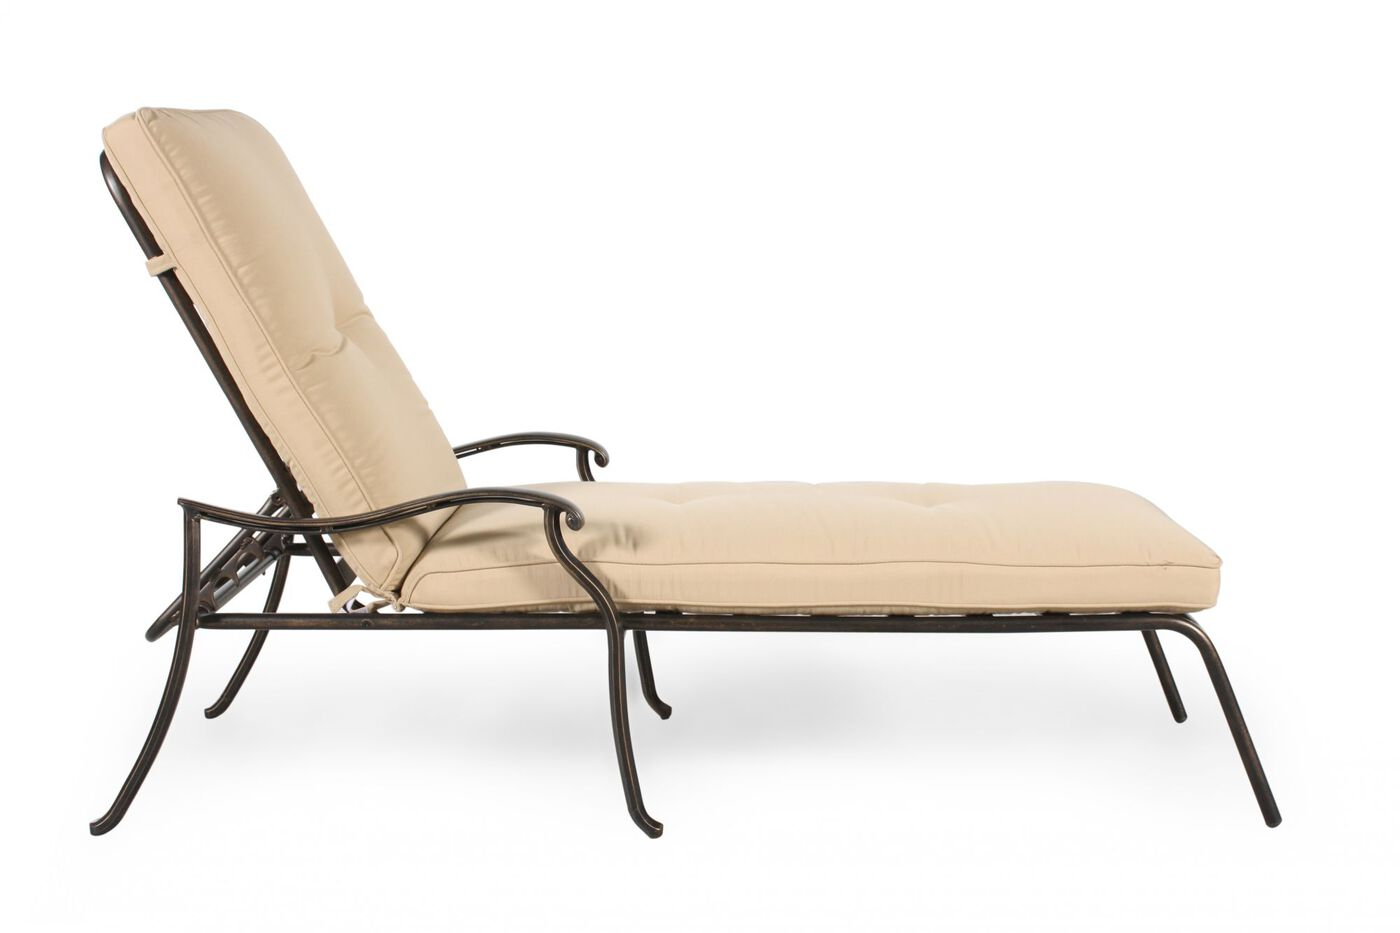 Agio Heritage Select Patio Chaise Lounge